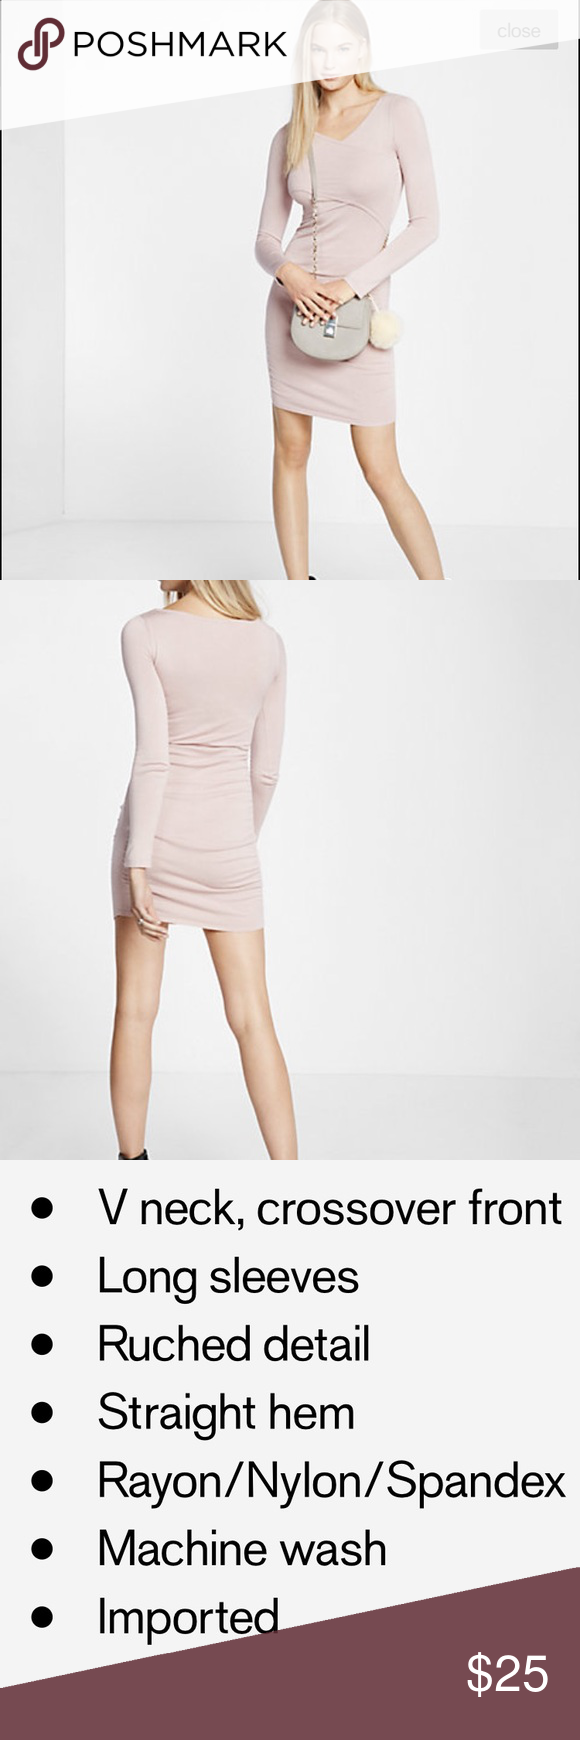 Express Cross Over Dress Pale pink NWT long sleeve sweater dress. Lightweight. Hits above the knee and I am 5'6. No TRADES but open to offers. Express Dresses Long Sleeve